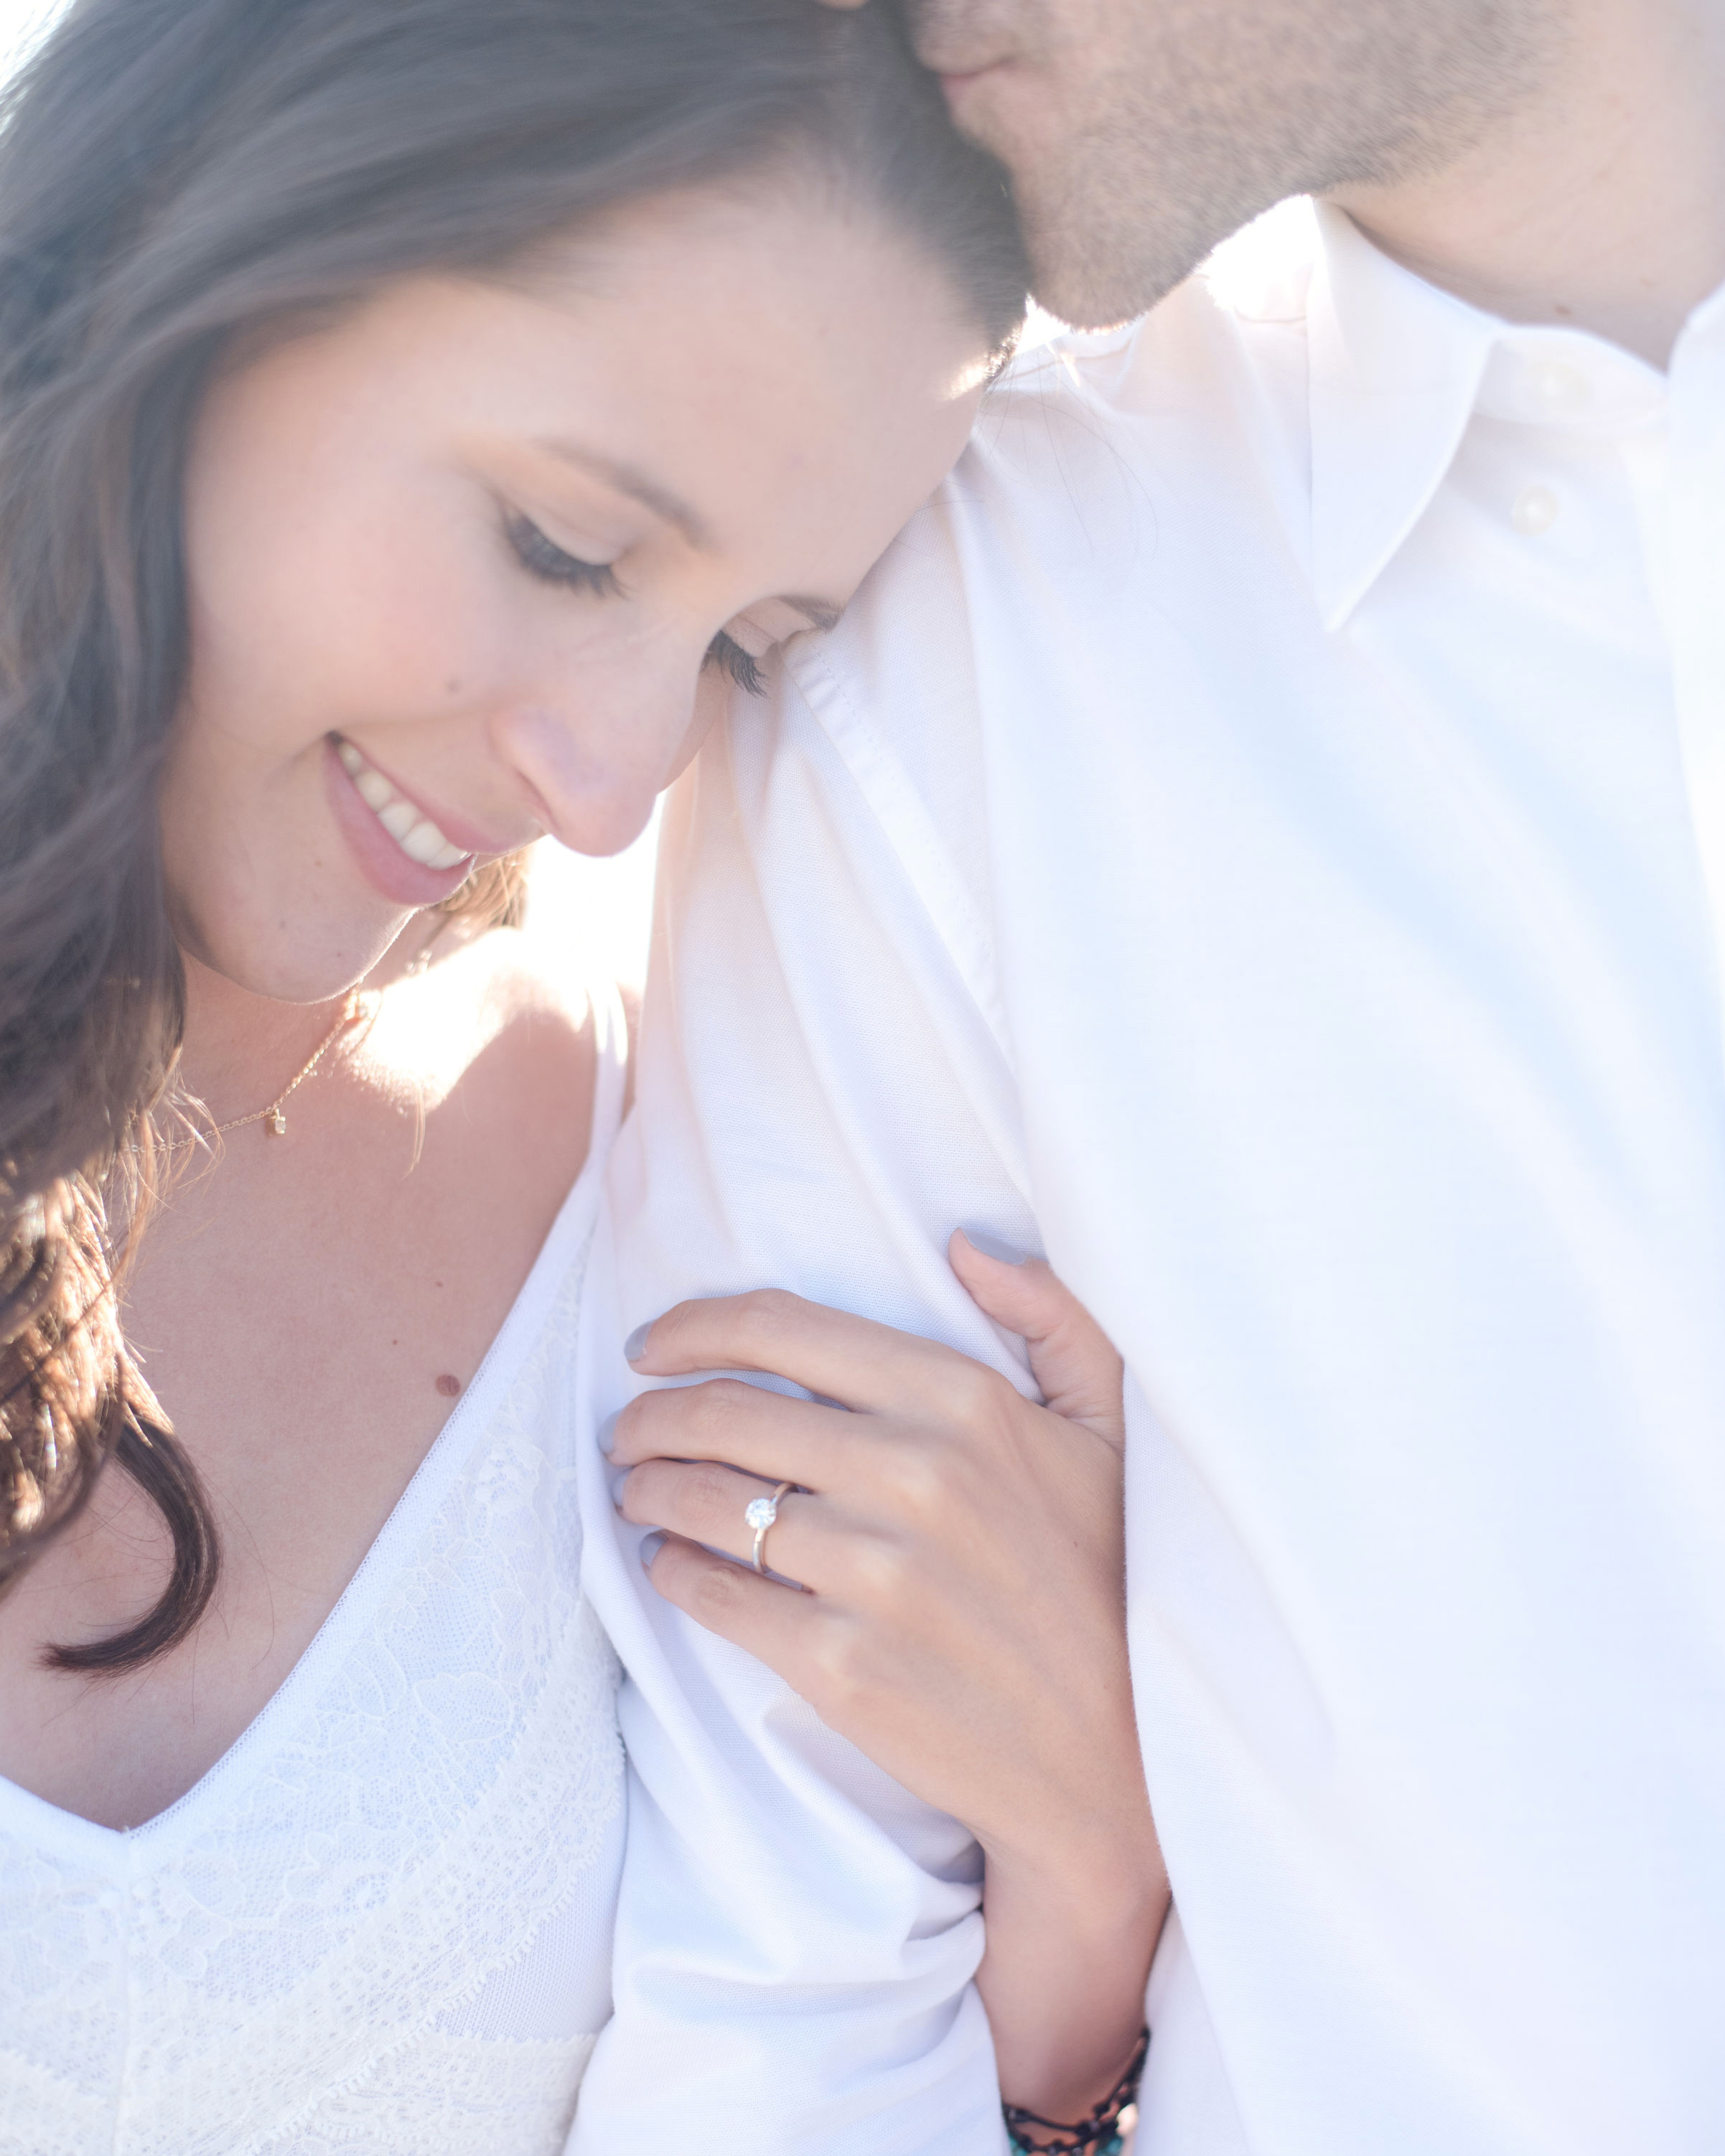 engagement photos light bright and airy by quiana marie photography natural soft makeup by kim baker beauty san jose california bridal and lifestyle makeup artist